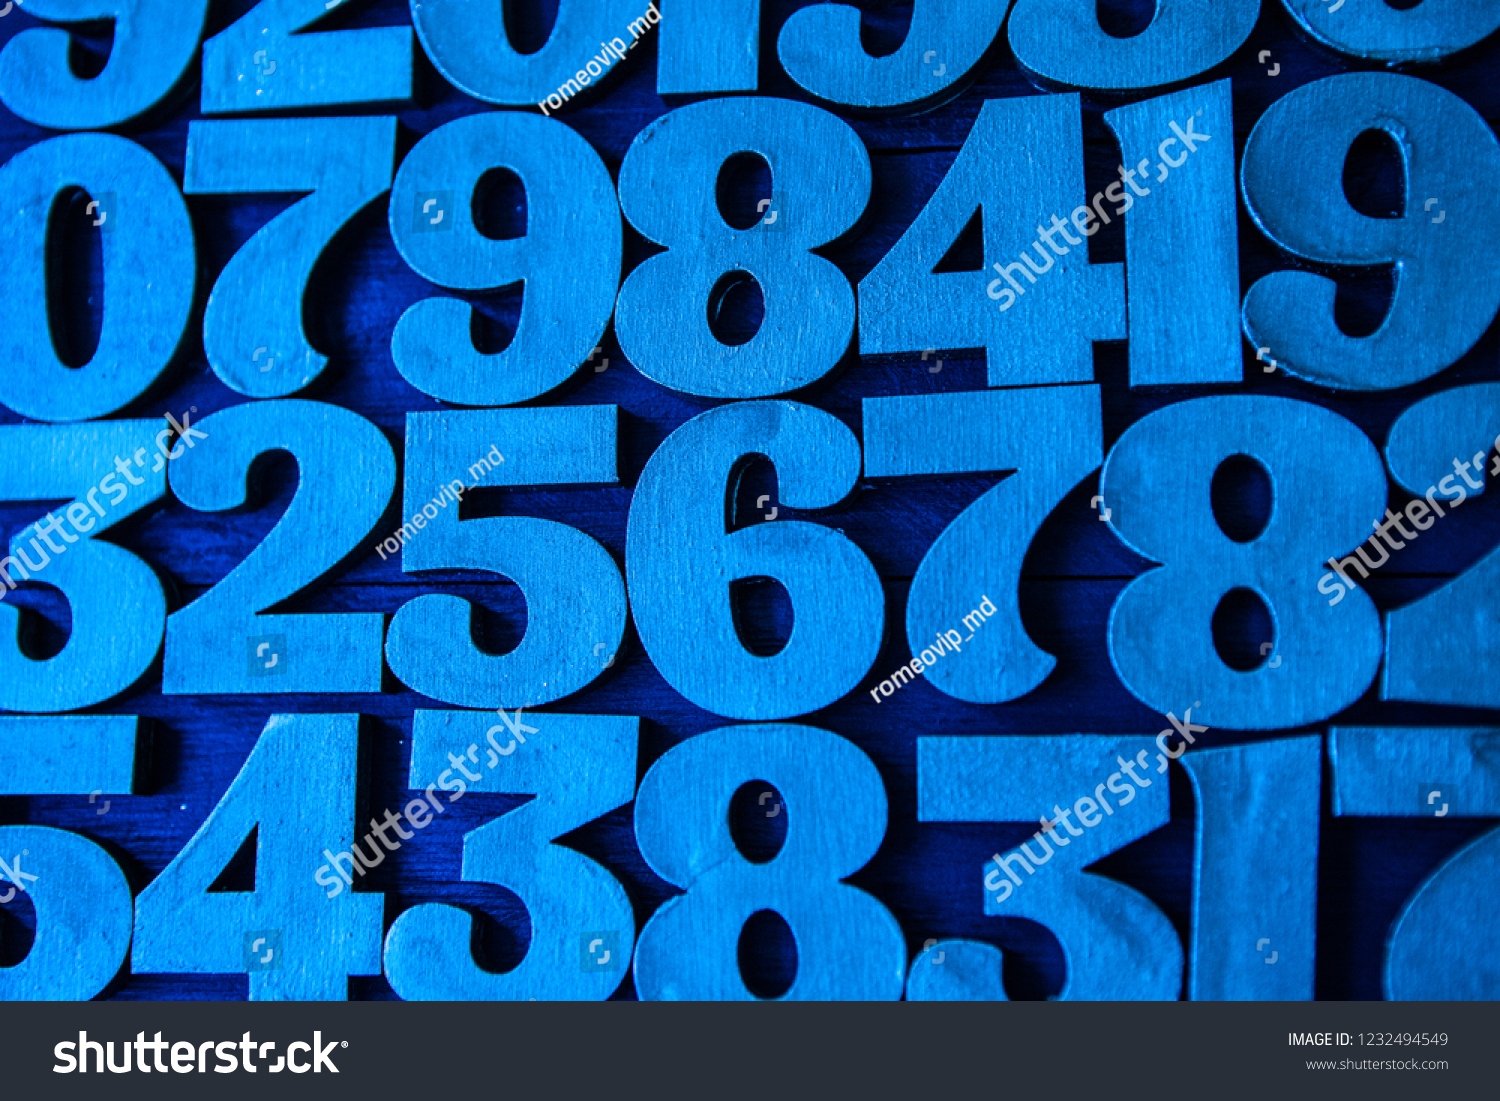 Background of numbers. from zero to nine. Background with numbers. Numbers texture. Mathematics concept